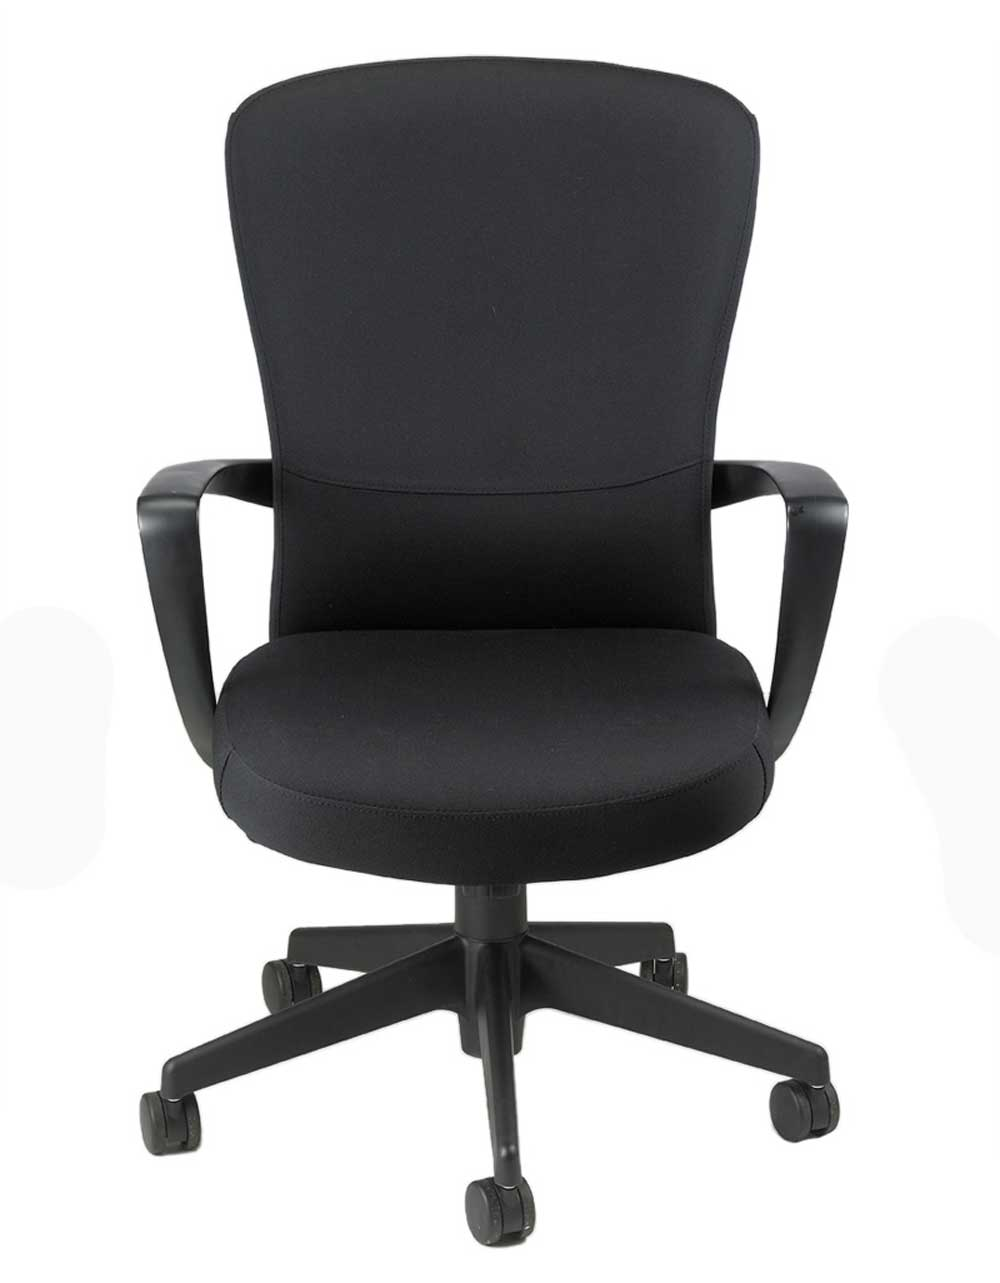 Eurotech Tribeca Large Office Fabric Chair with Fixed Arm